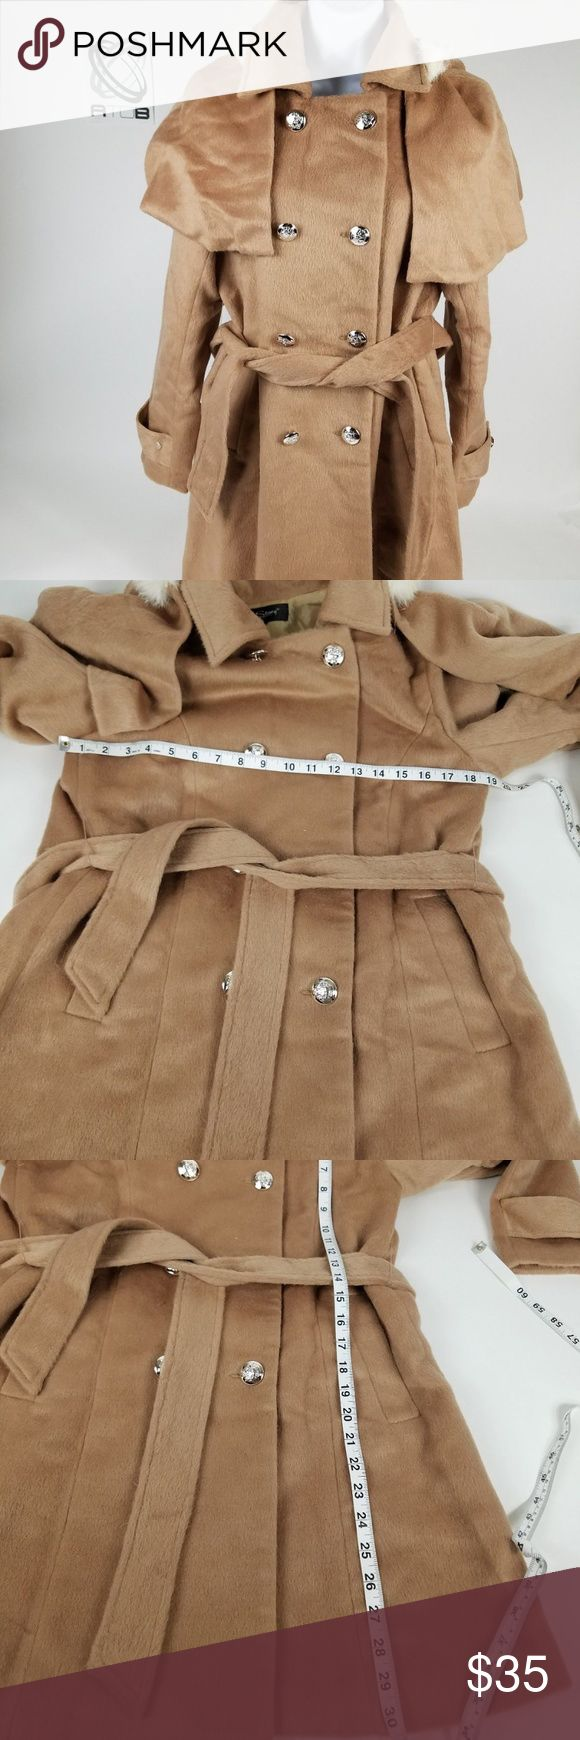 NWT R.J Story Tan Trench Coat Womens Size XL Fur R.J Story Tan Trench Coat Womens Size XL Fur Removable Hood Brown - CL R.J. Story Jackets & Coats Trench Coats